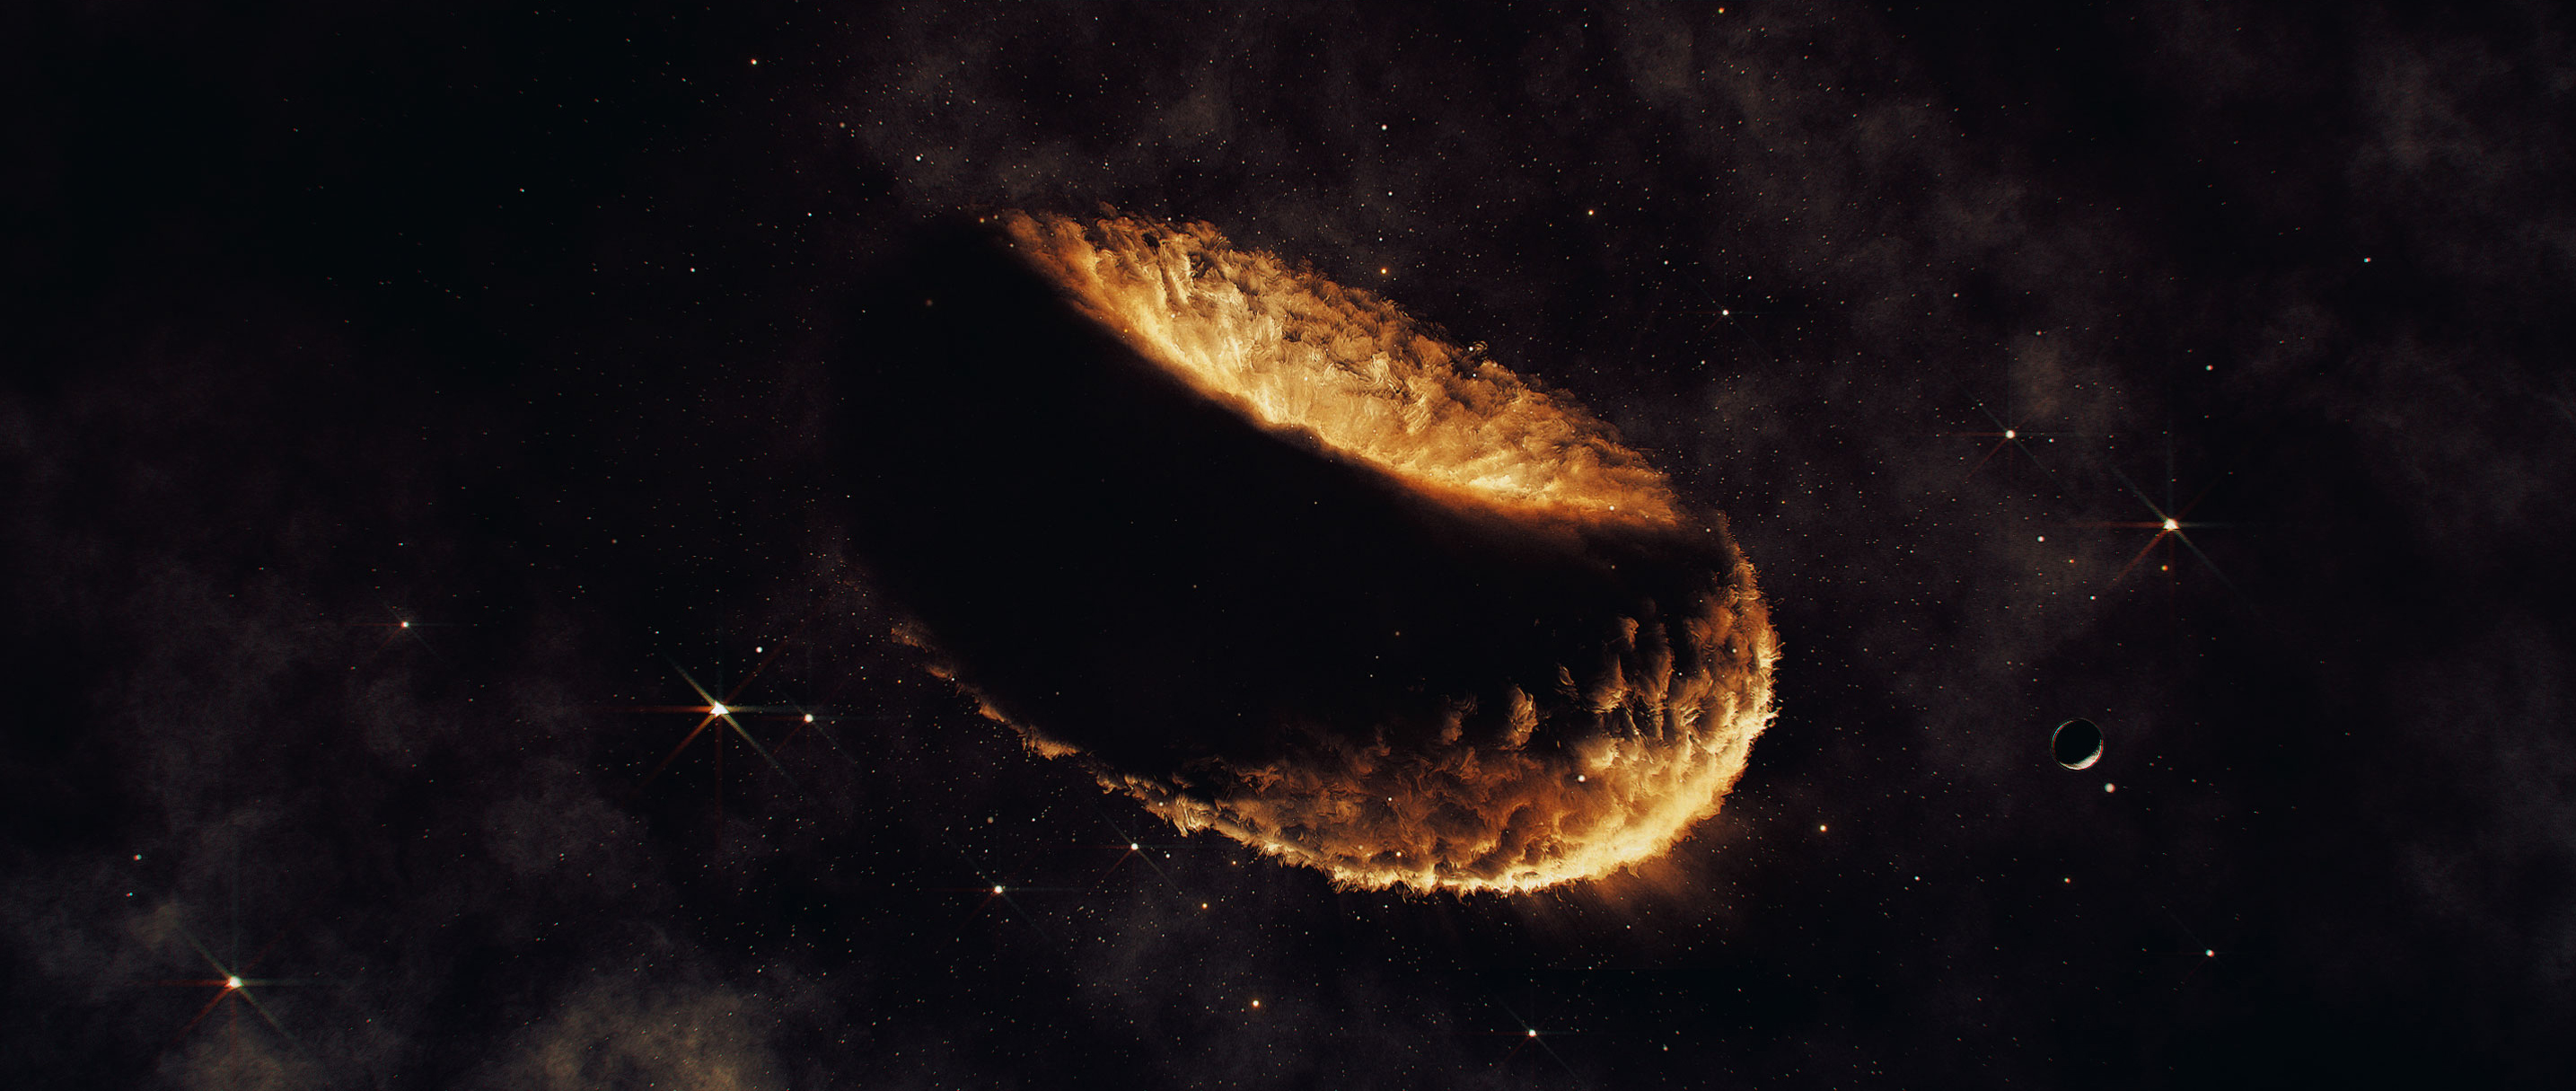 An artist's impression of a synestia, a hypothetical object made of vaporized rock that might have birthed the moon.